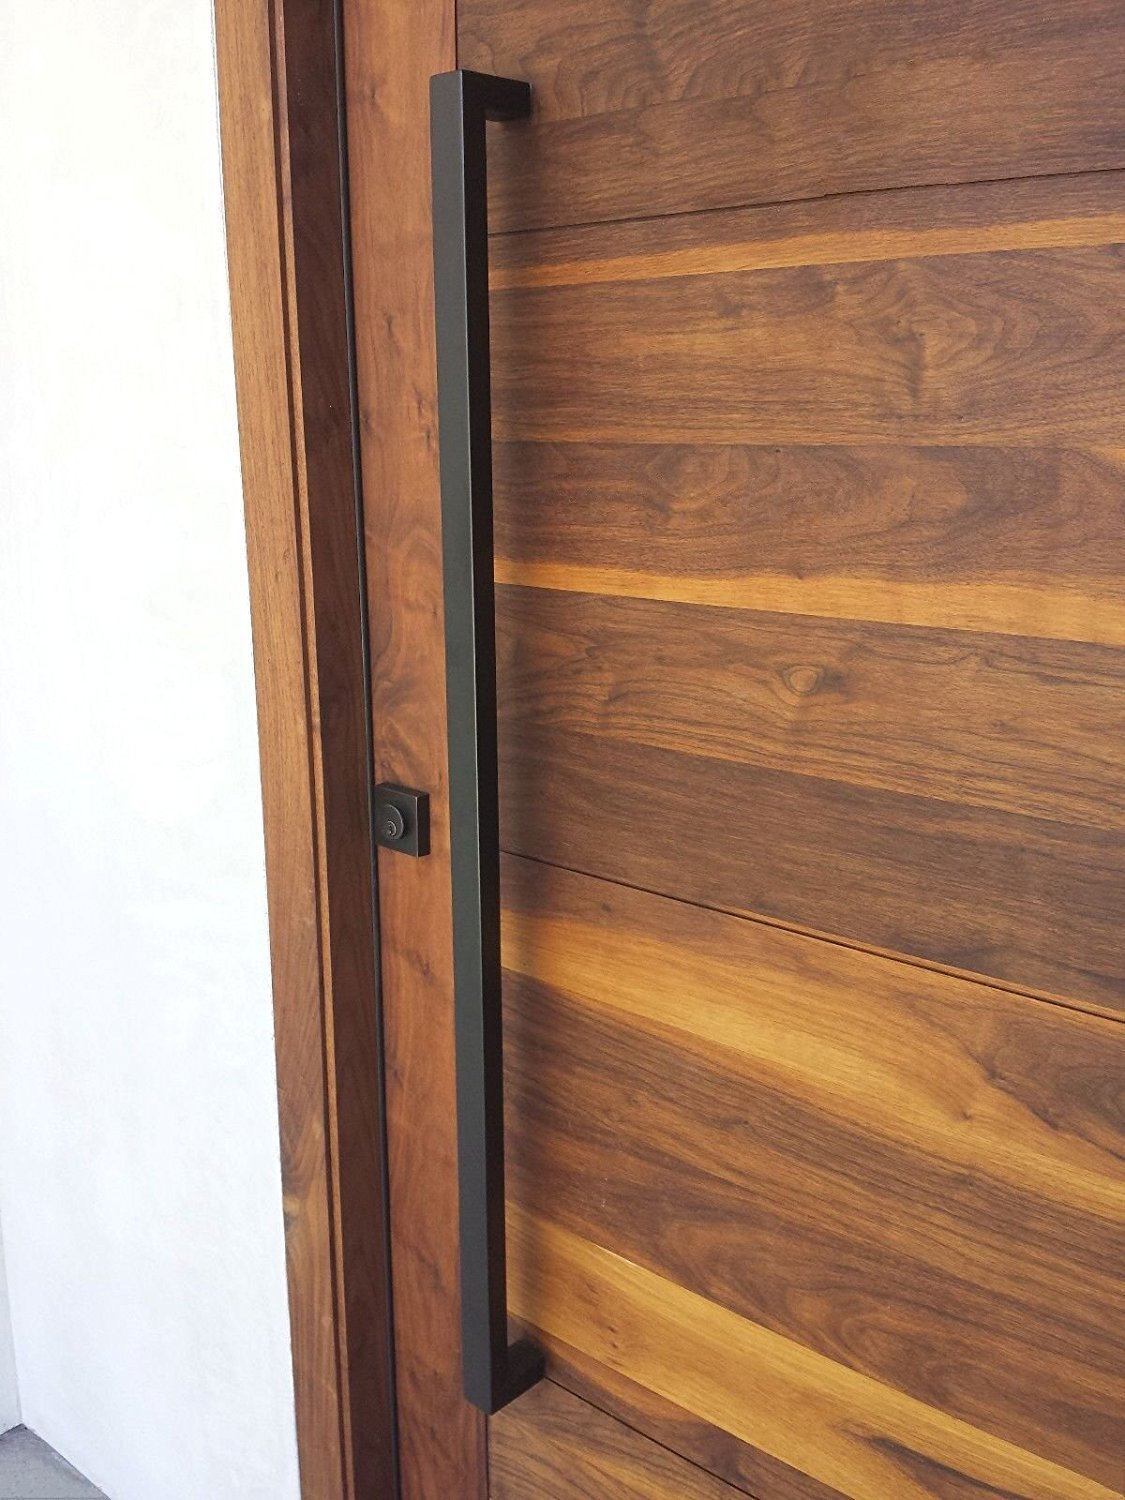 166 Matt Black Modern Stainless Steel Sus304 Entrance Entry Commercial Office Store Front Wood Timber Glass Garage Commercial Aluminum Door Pull Push Handles Double-sided (48 Inches /1200x25x38mm)